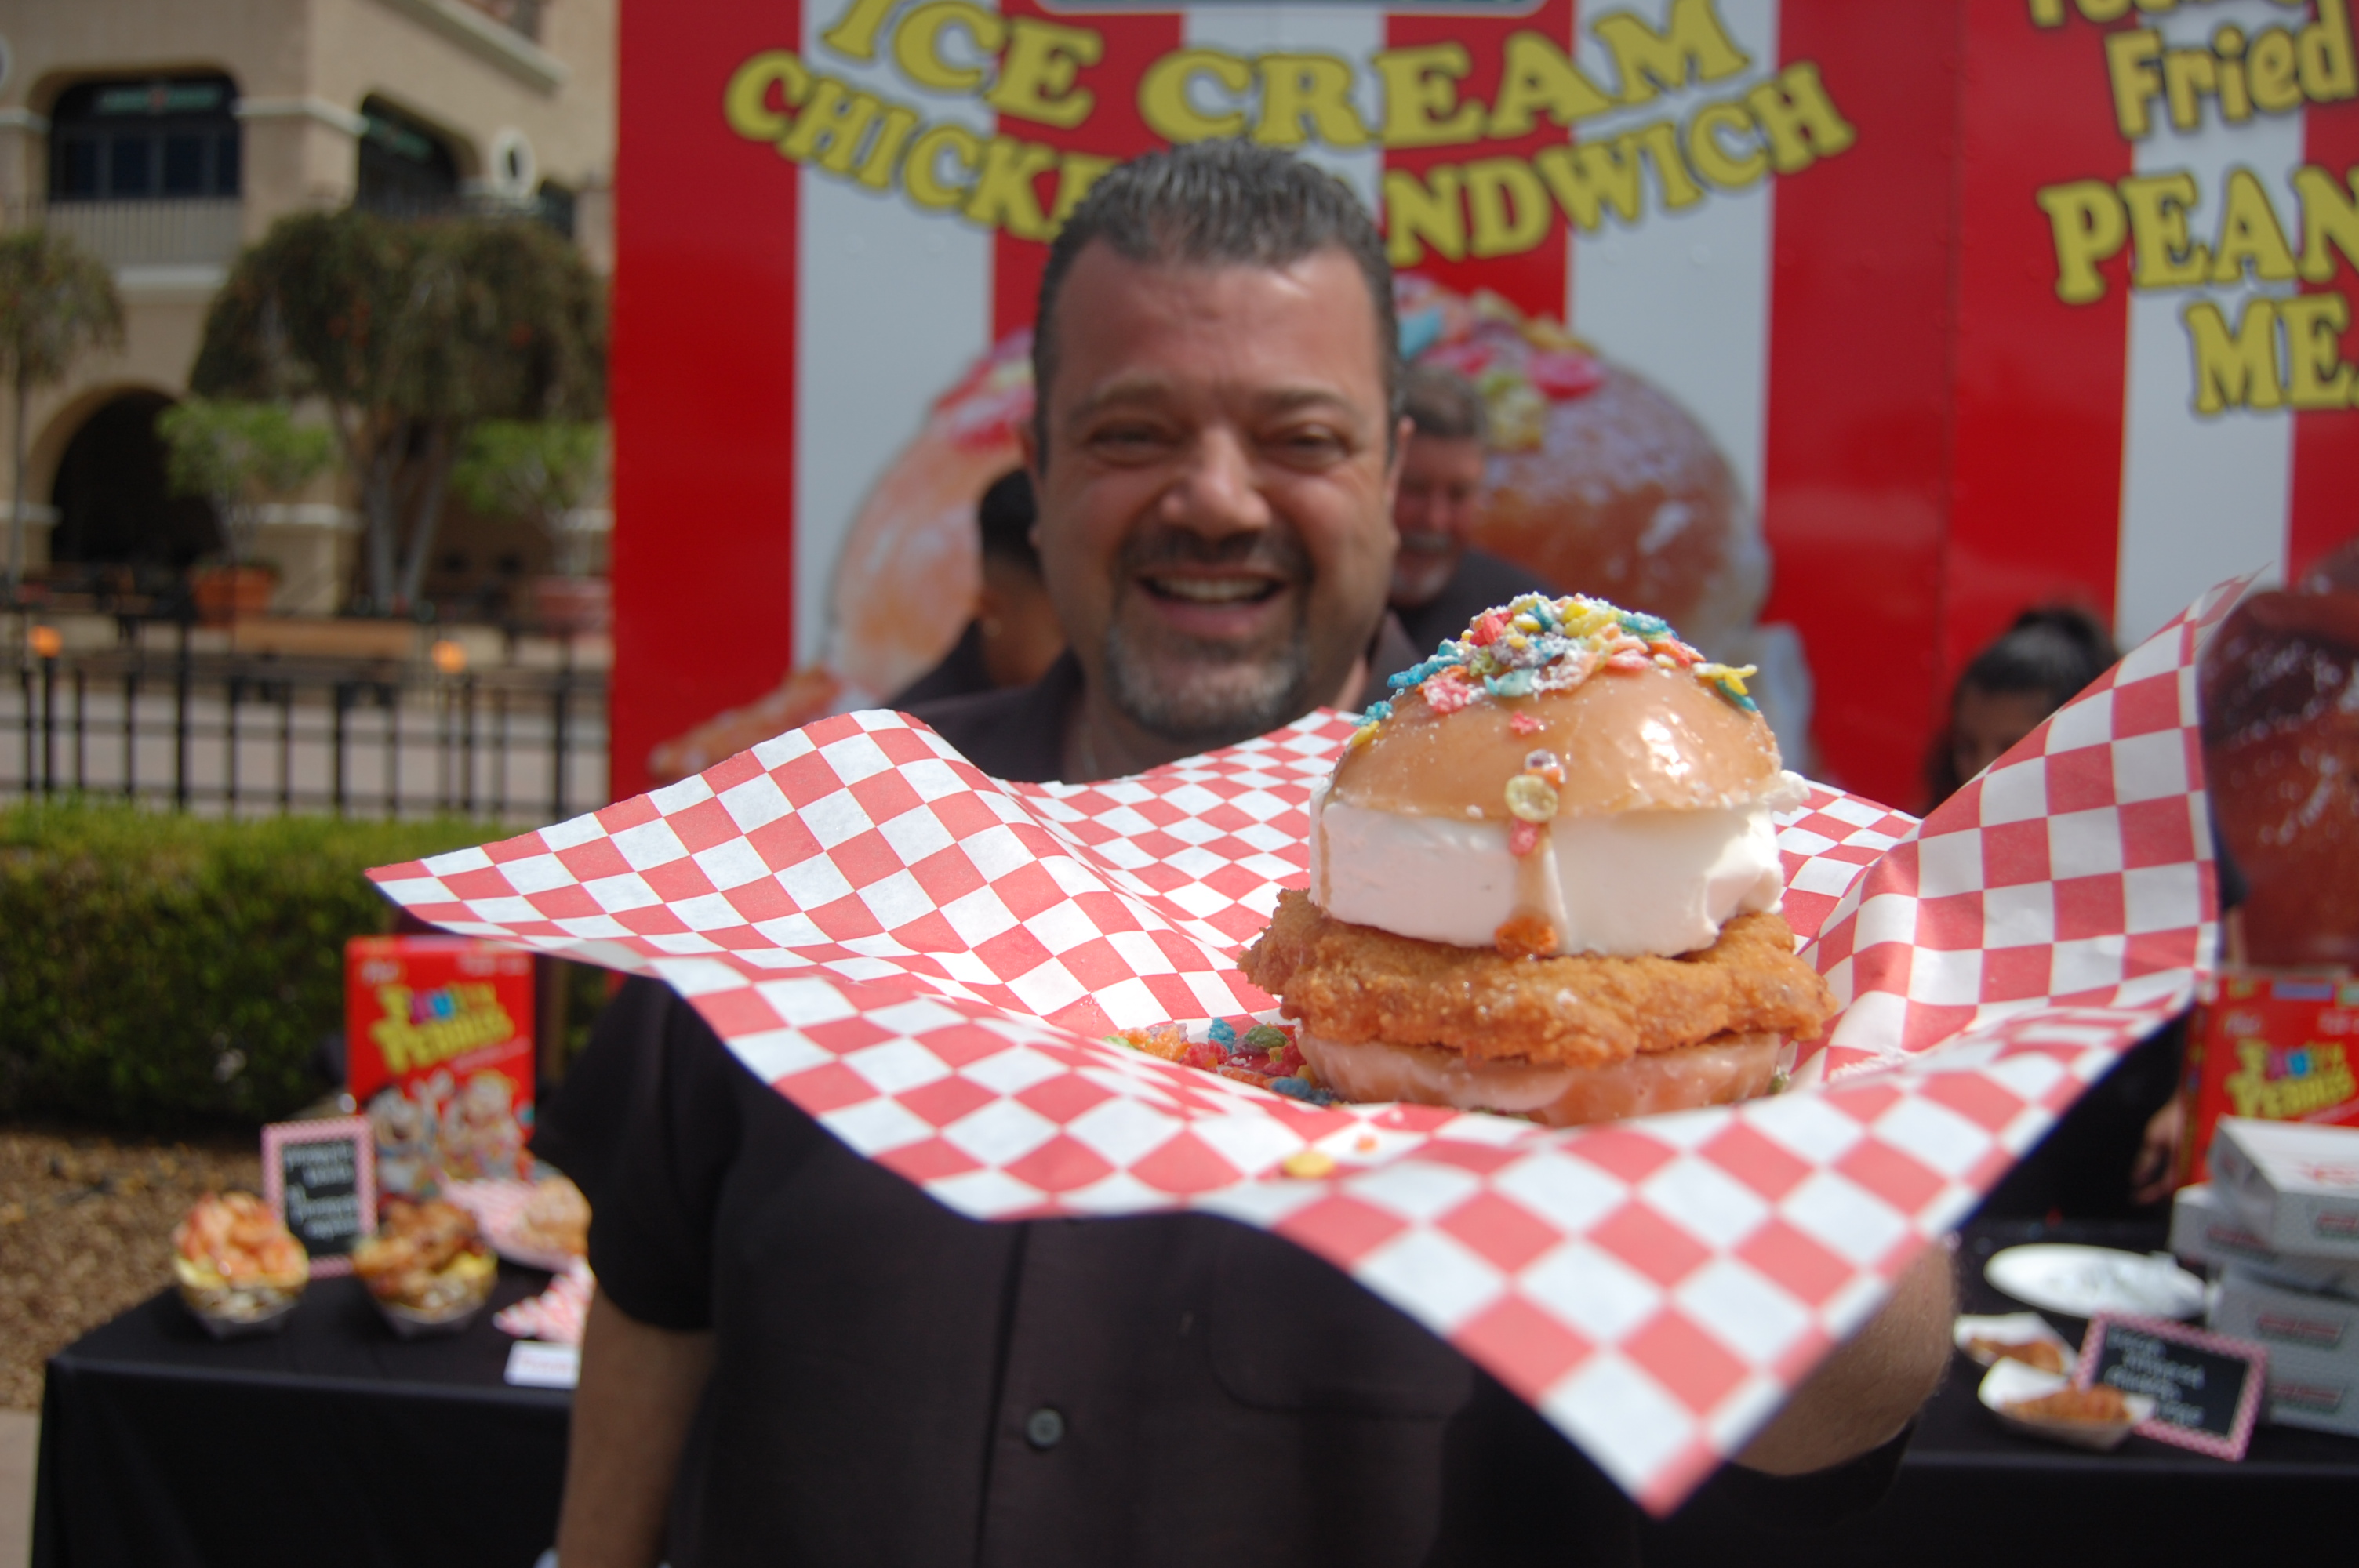 Charles Boghosian, better known as Chicken Charlie, shows off the Krispy Kreme chicken ice cream he created for the 2017 San Diego County Fair. It's a fried boneless chicken breast and 5-ounce slab of Blue Bunny vanilla ice cream between two jelly doughnut halves topped with Fruity Pebbles.